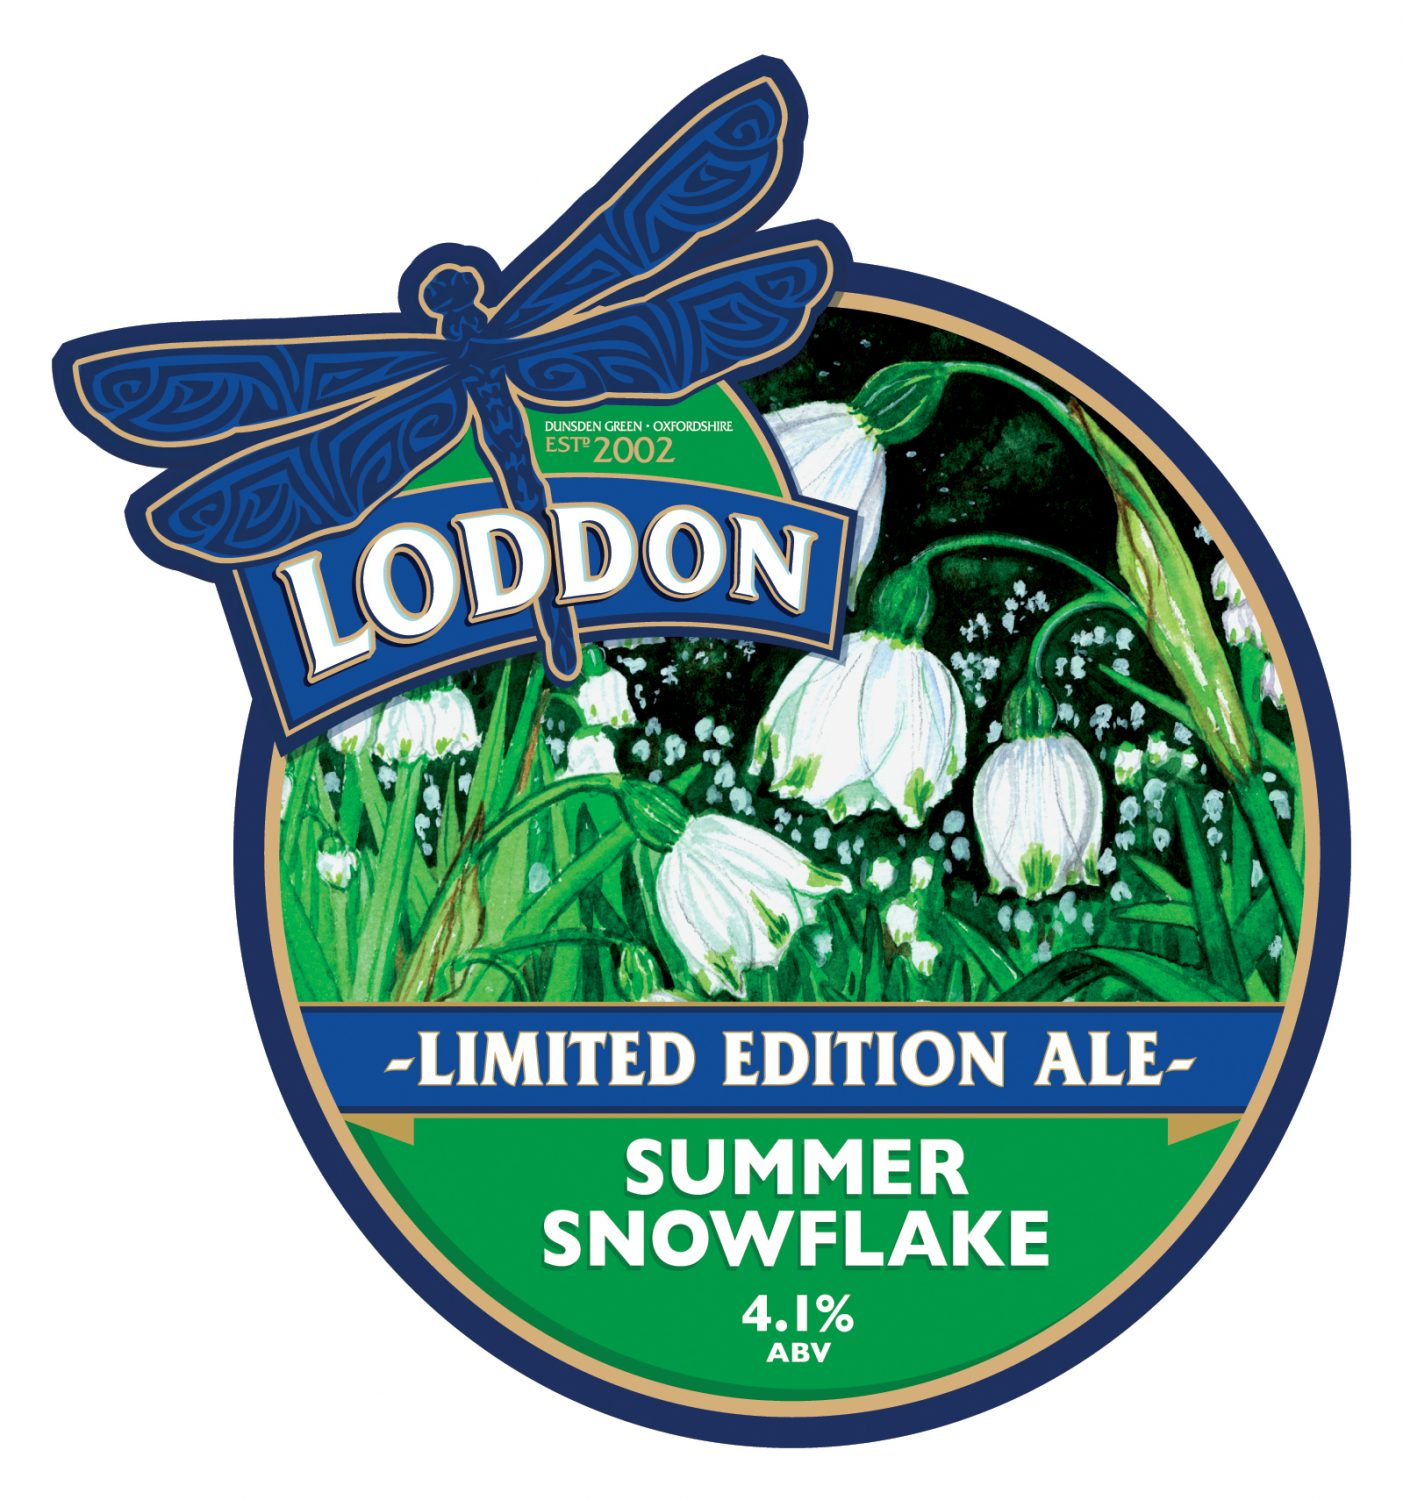 Loddon Brewery Limited Edition Ale - Summer Snowflake